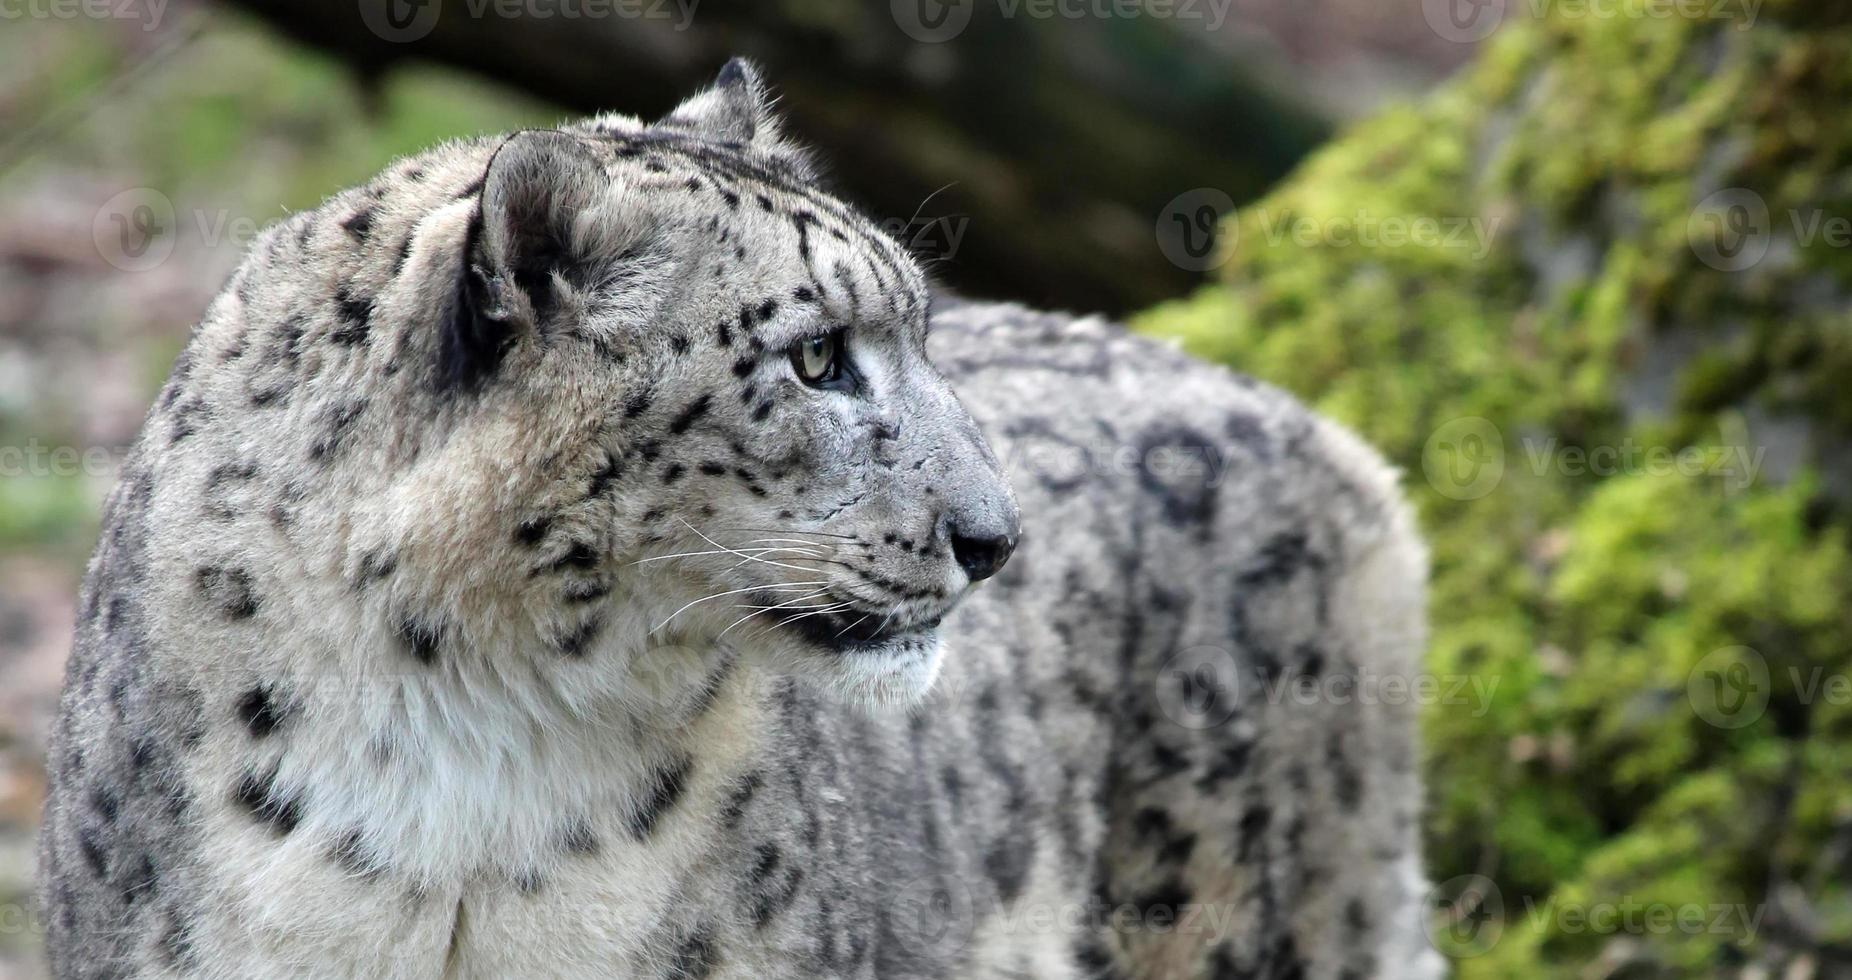 Close-up view of a Snow leopard photo